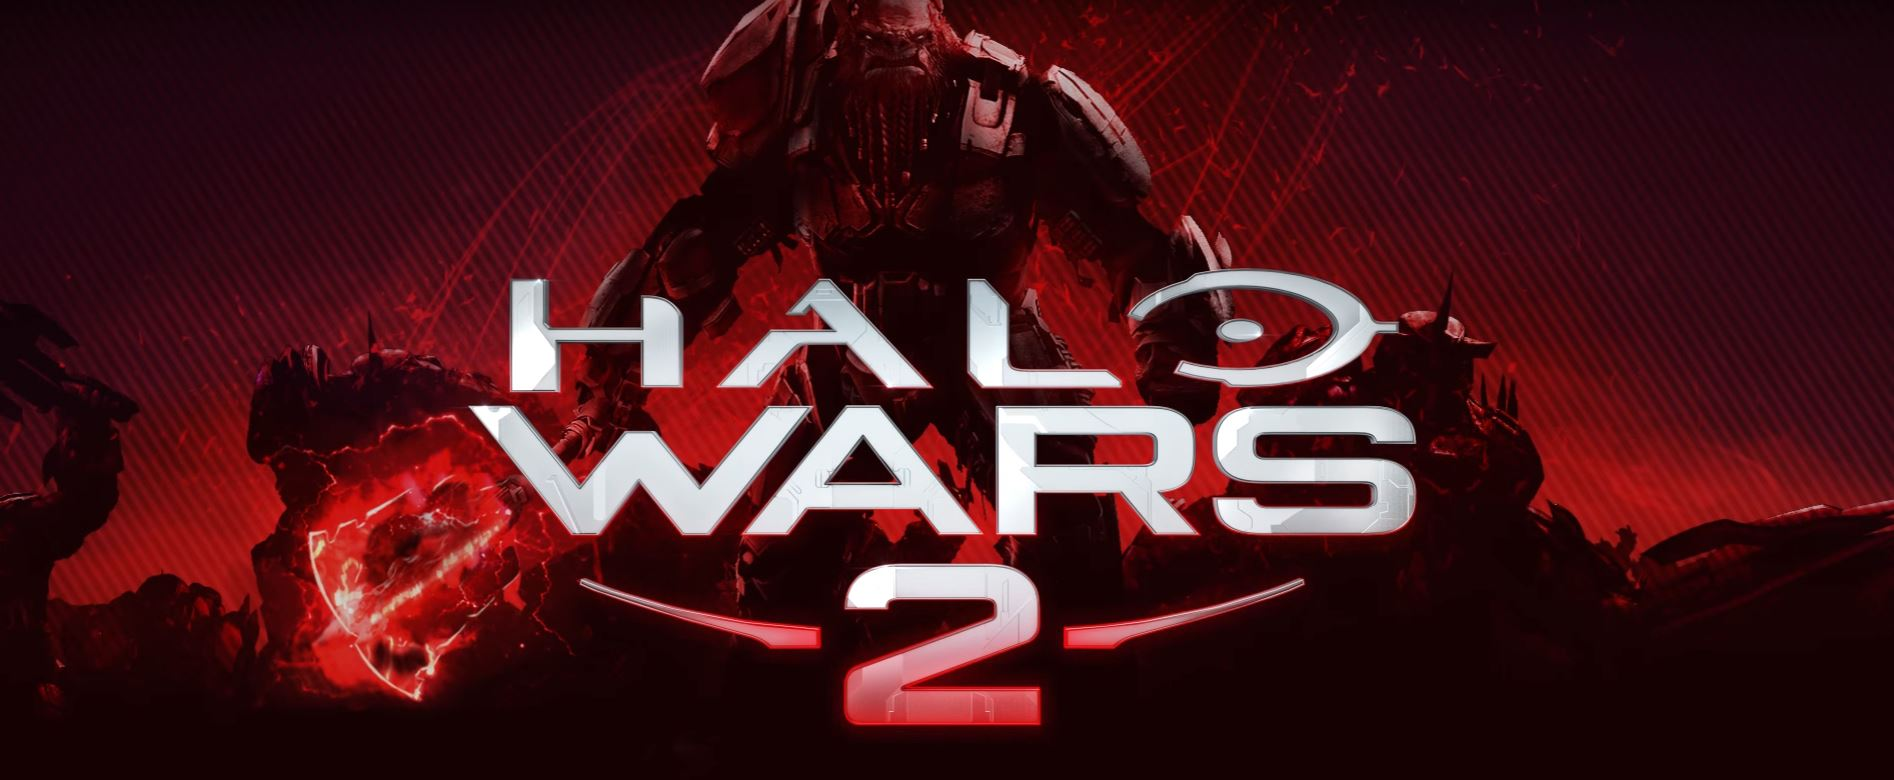 Photo of Halo Wars 2 Blitz Beta Coming For PC And Xbox One